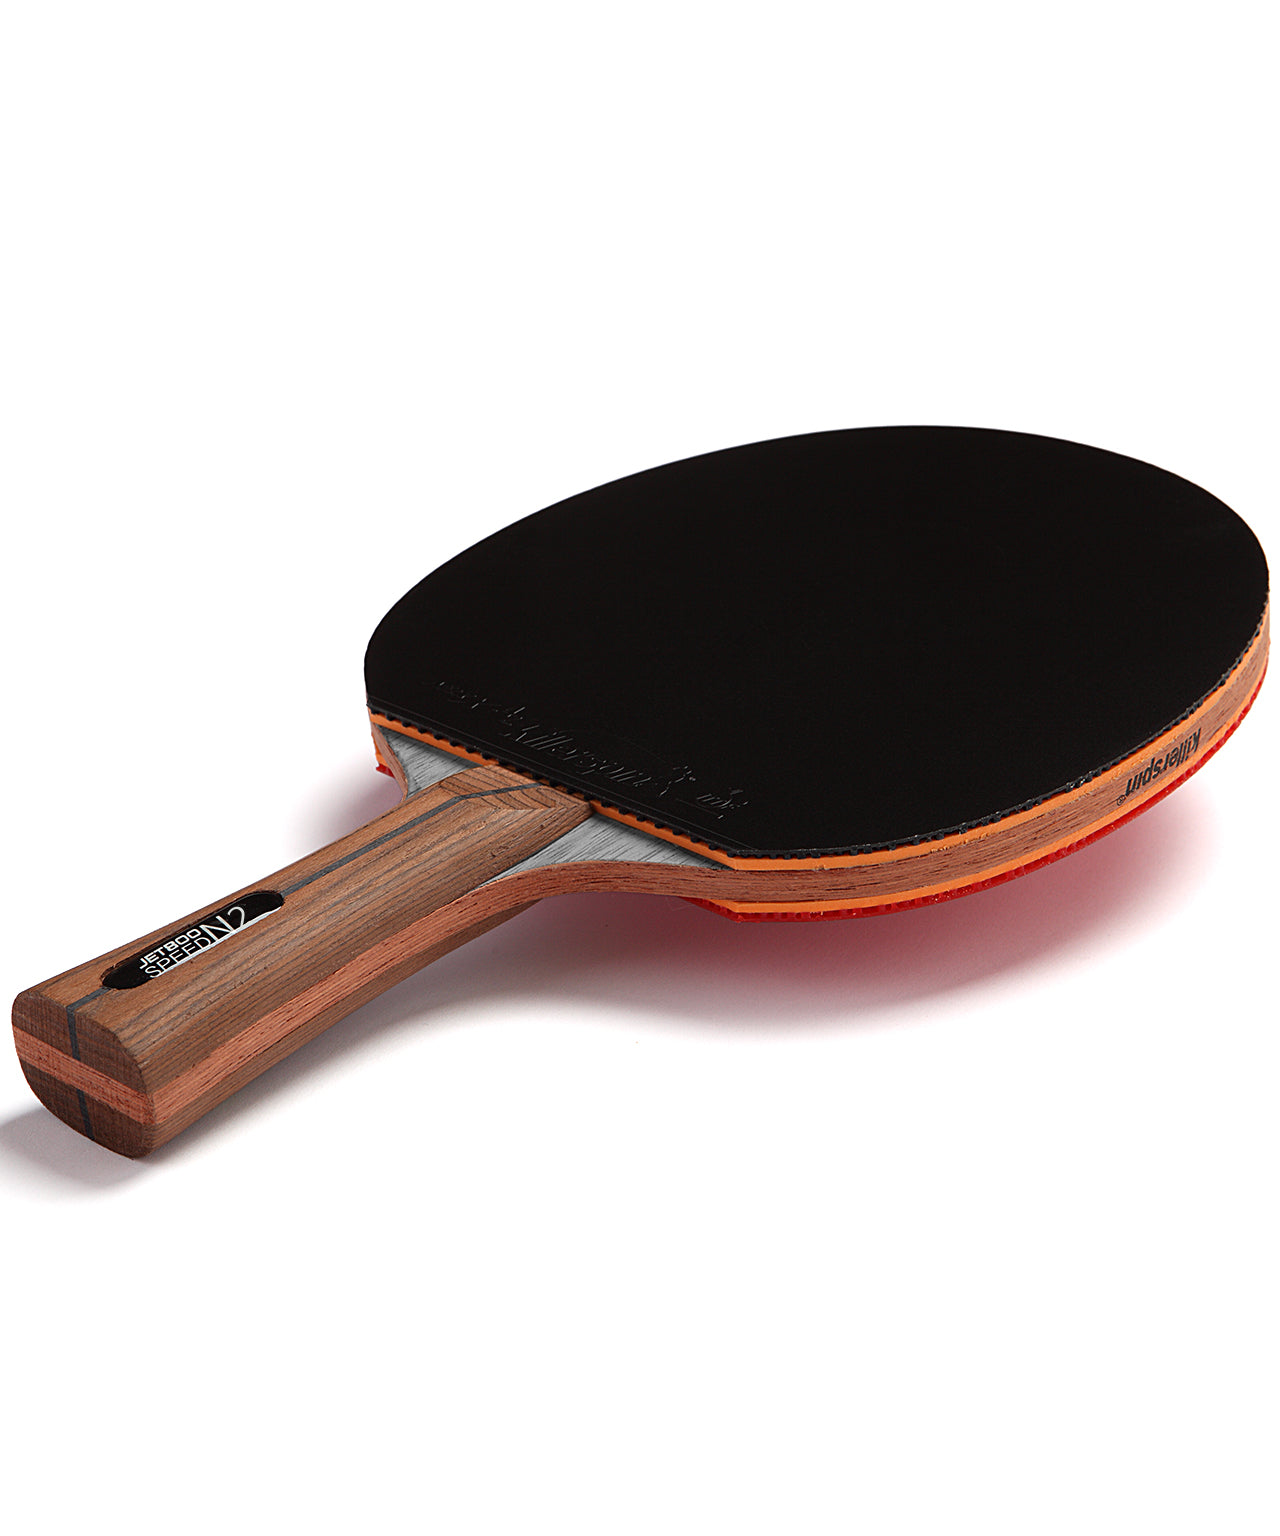 Killerspin Ping Pong Paddle Jet800 Speed N2 - Black Rubber